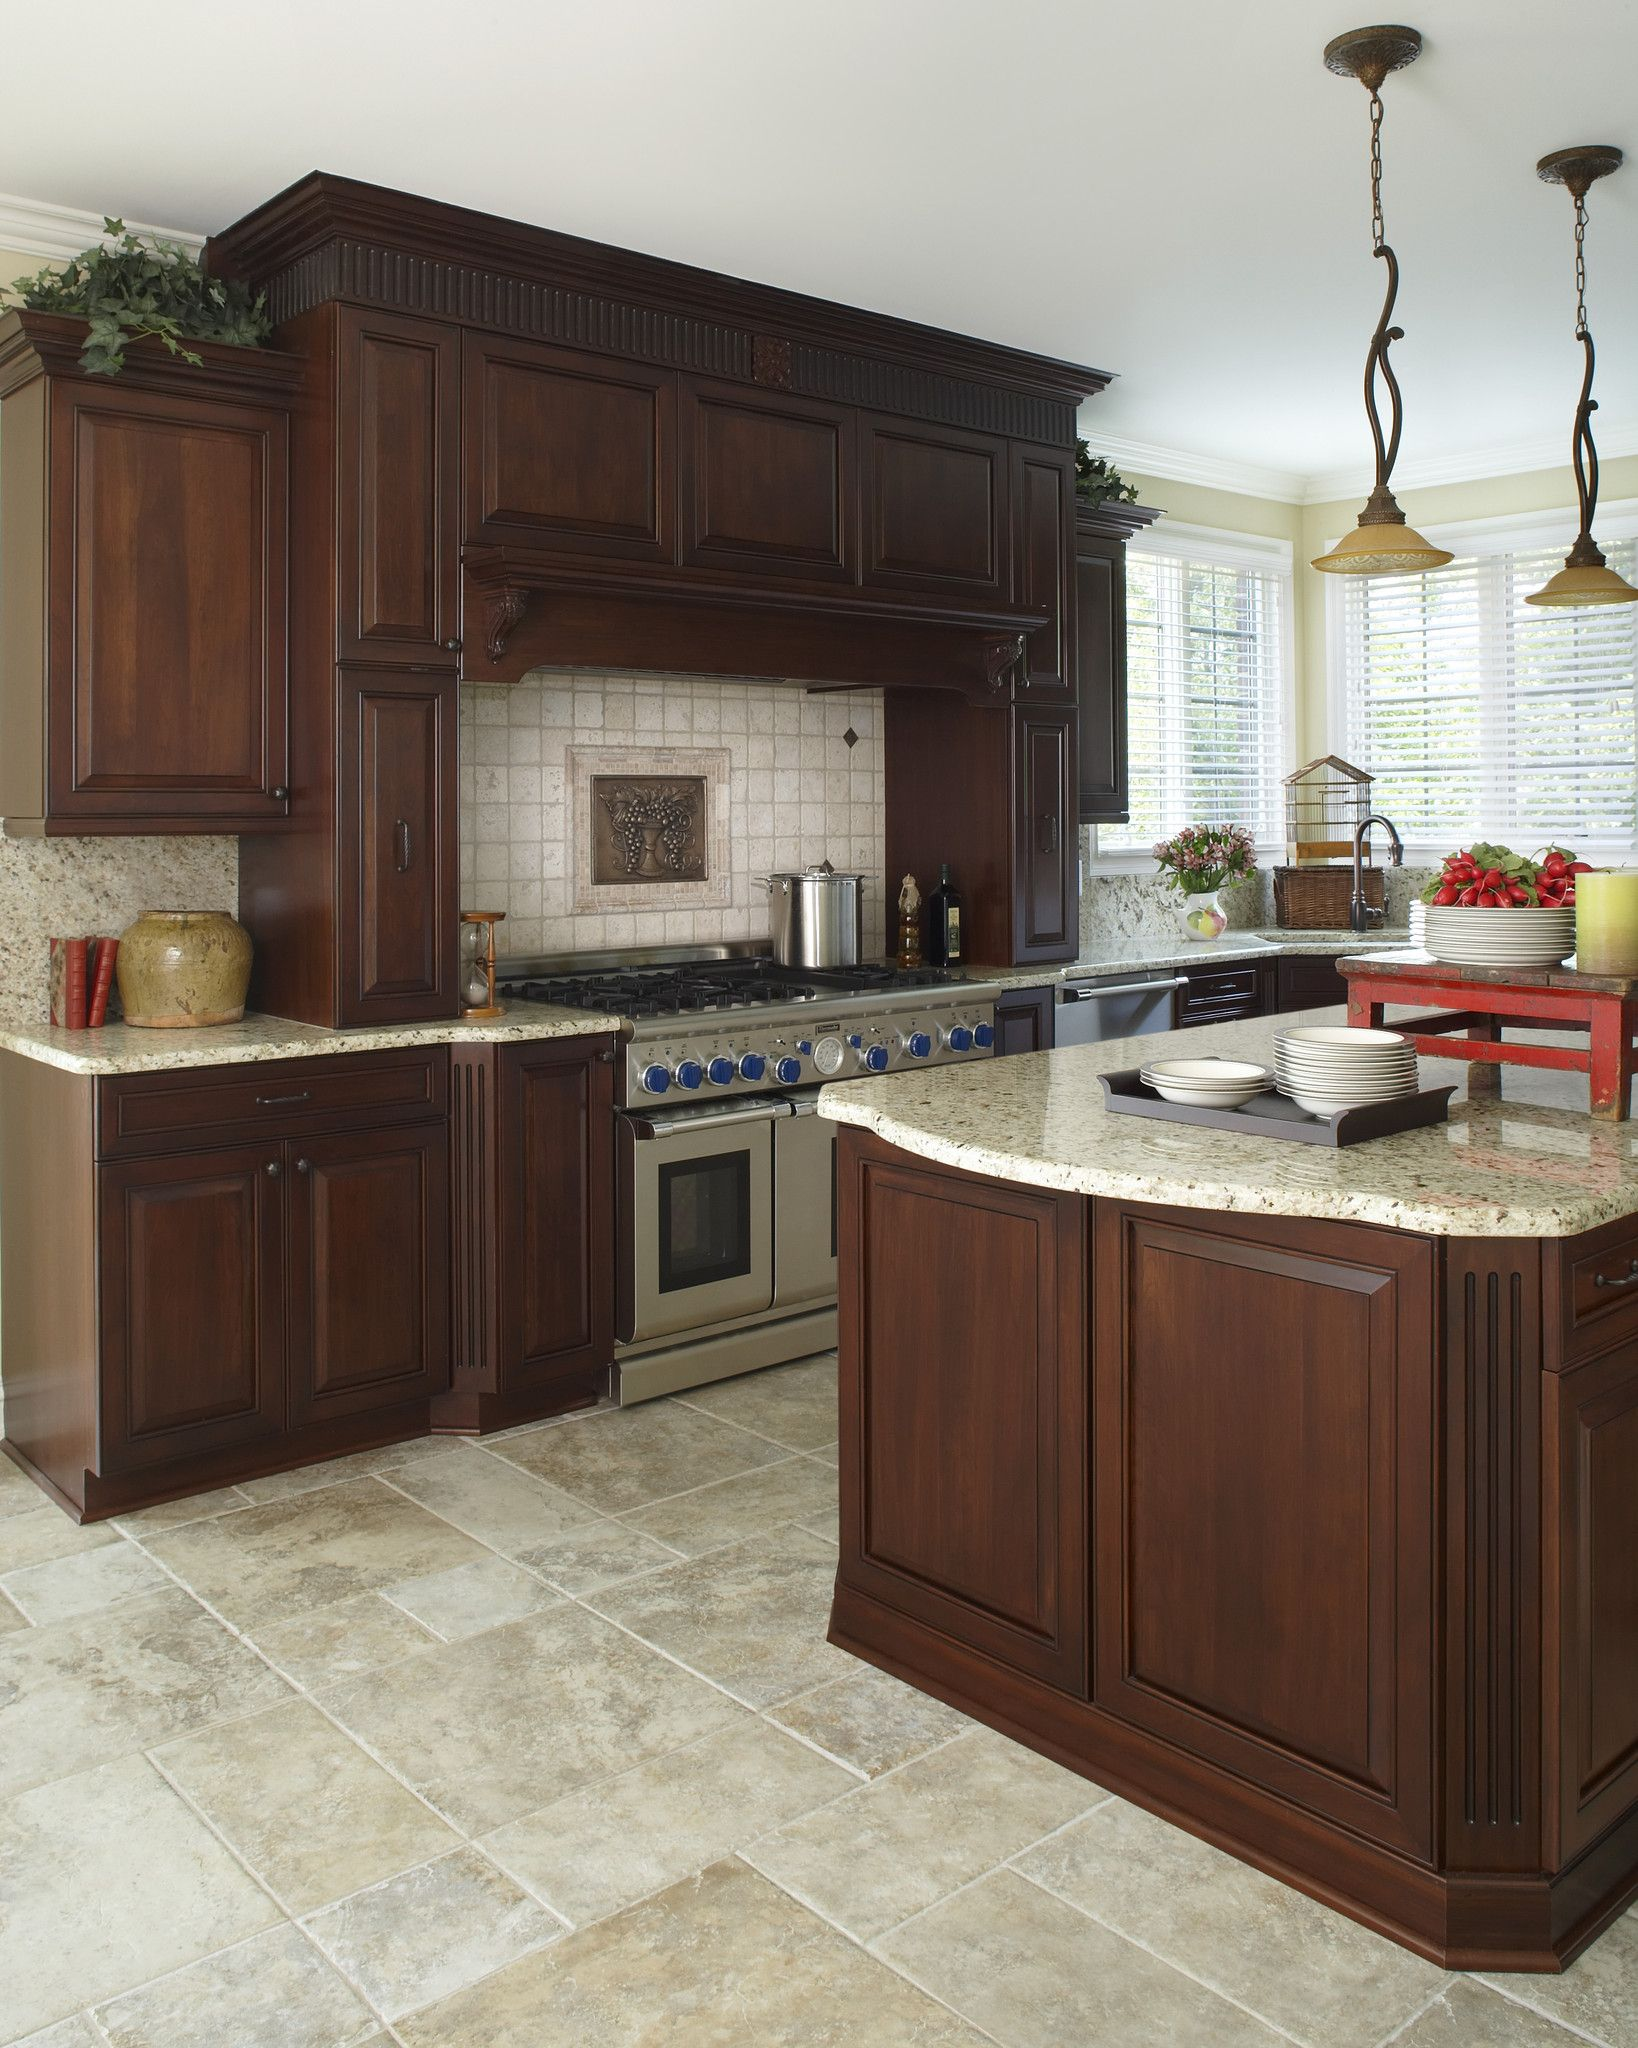 LaFata Cabinets matches the perfect cabinets to your ...